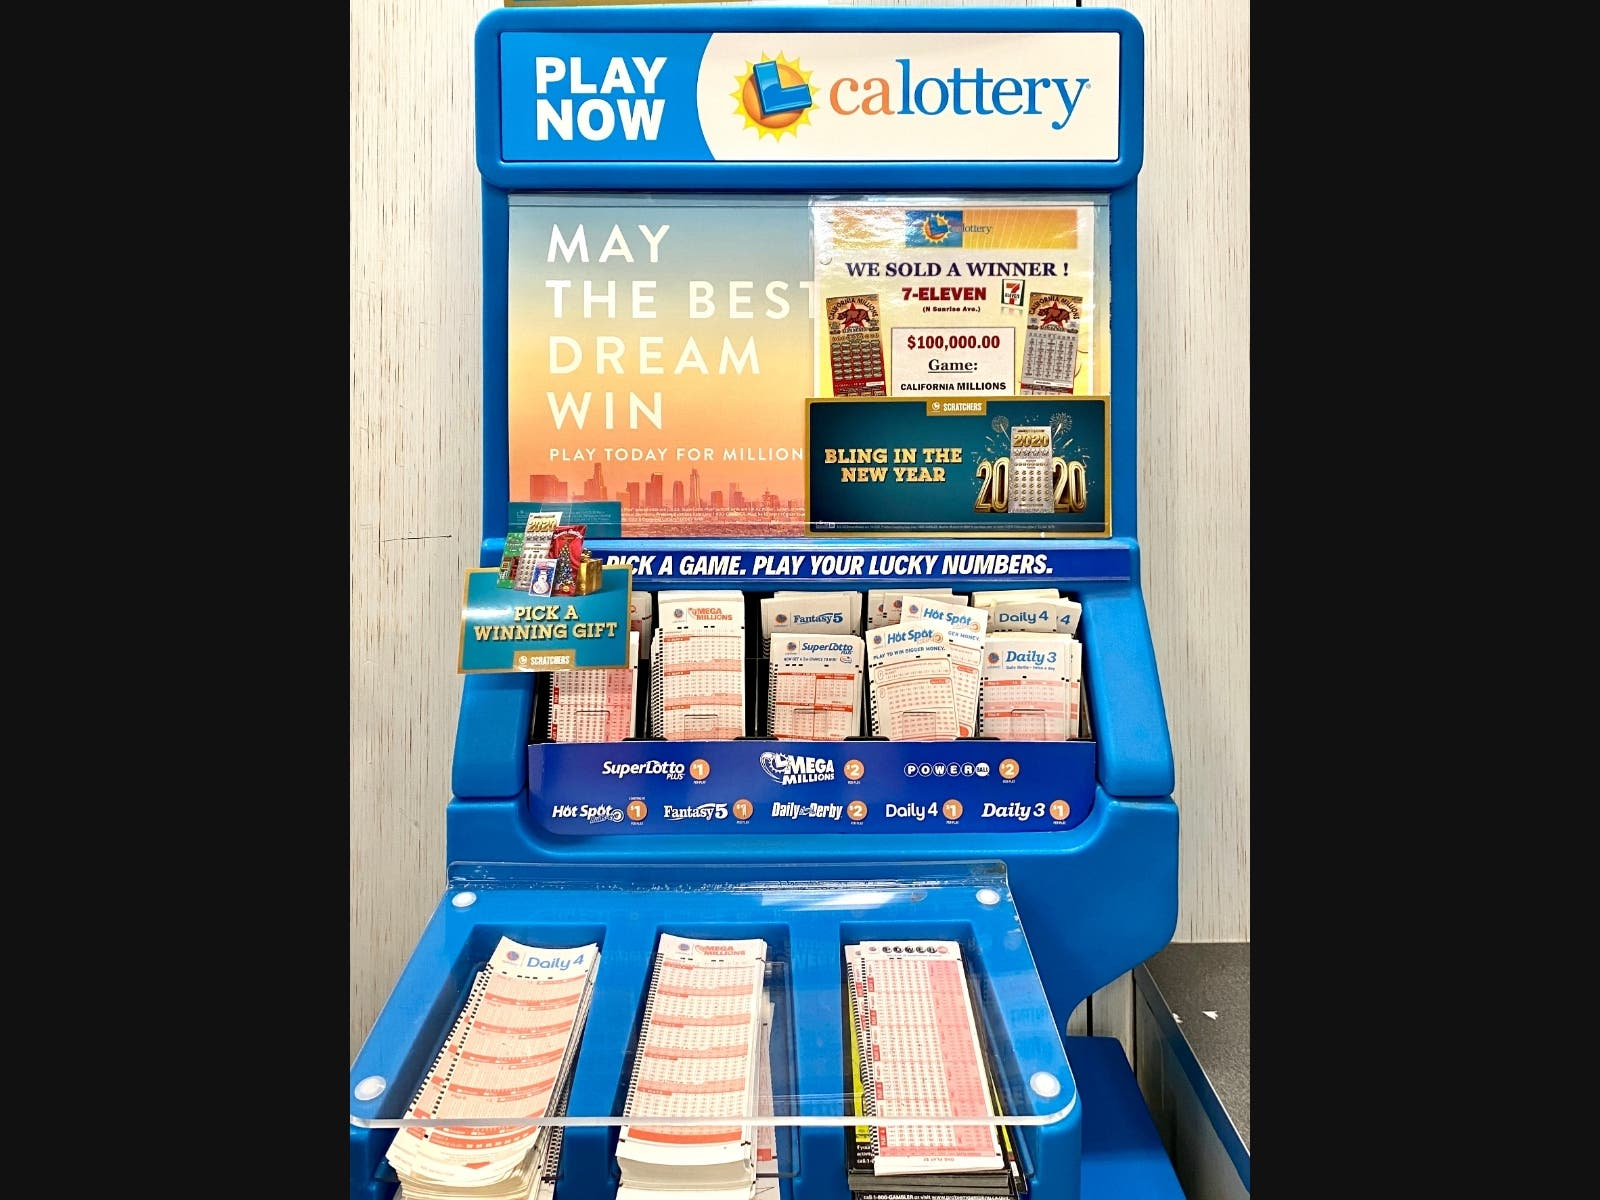 2 3m Mega Millions Ticket Bought At Contra Costa Gas Station Concord Ca Patch